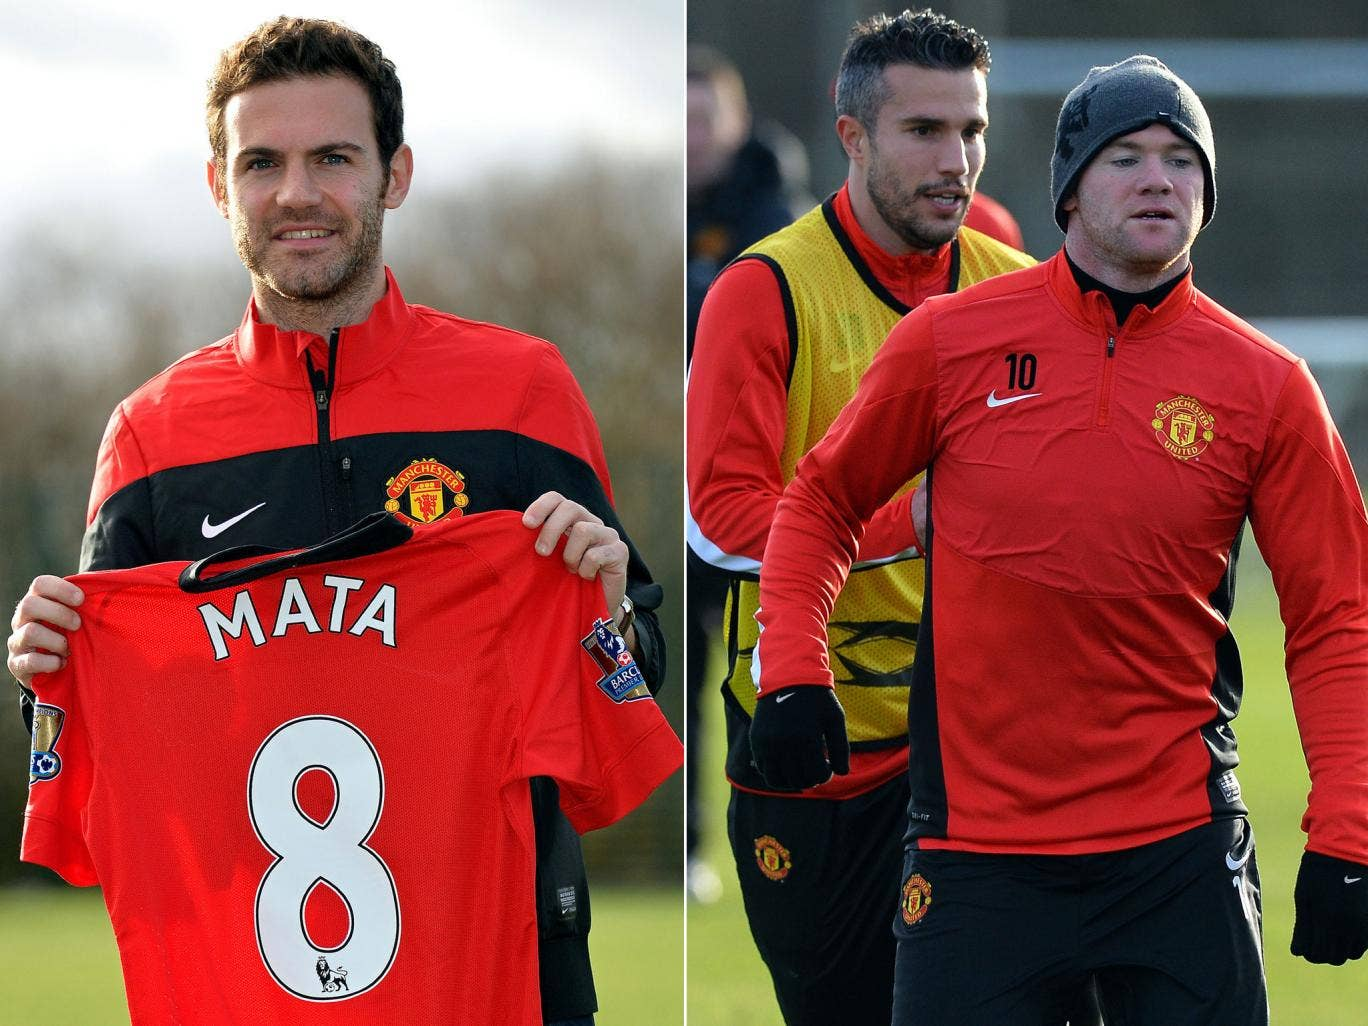 Juan Mata was presented as a Manchester United player on the same day as the return to training of Robin van Persie and Wayne Rooney